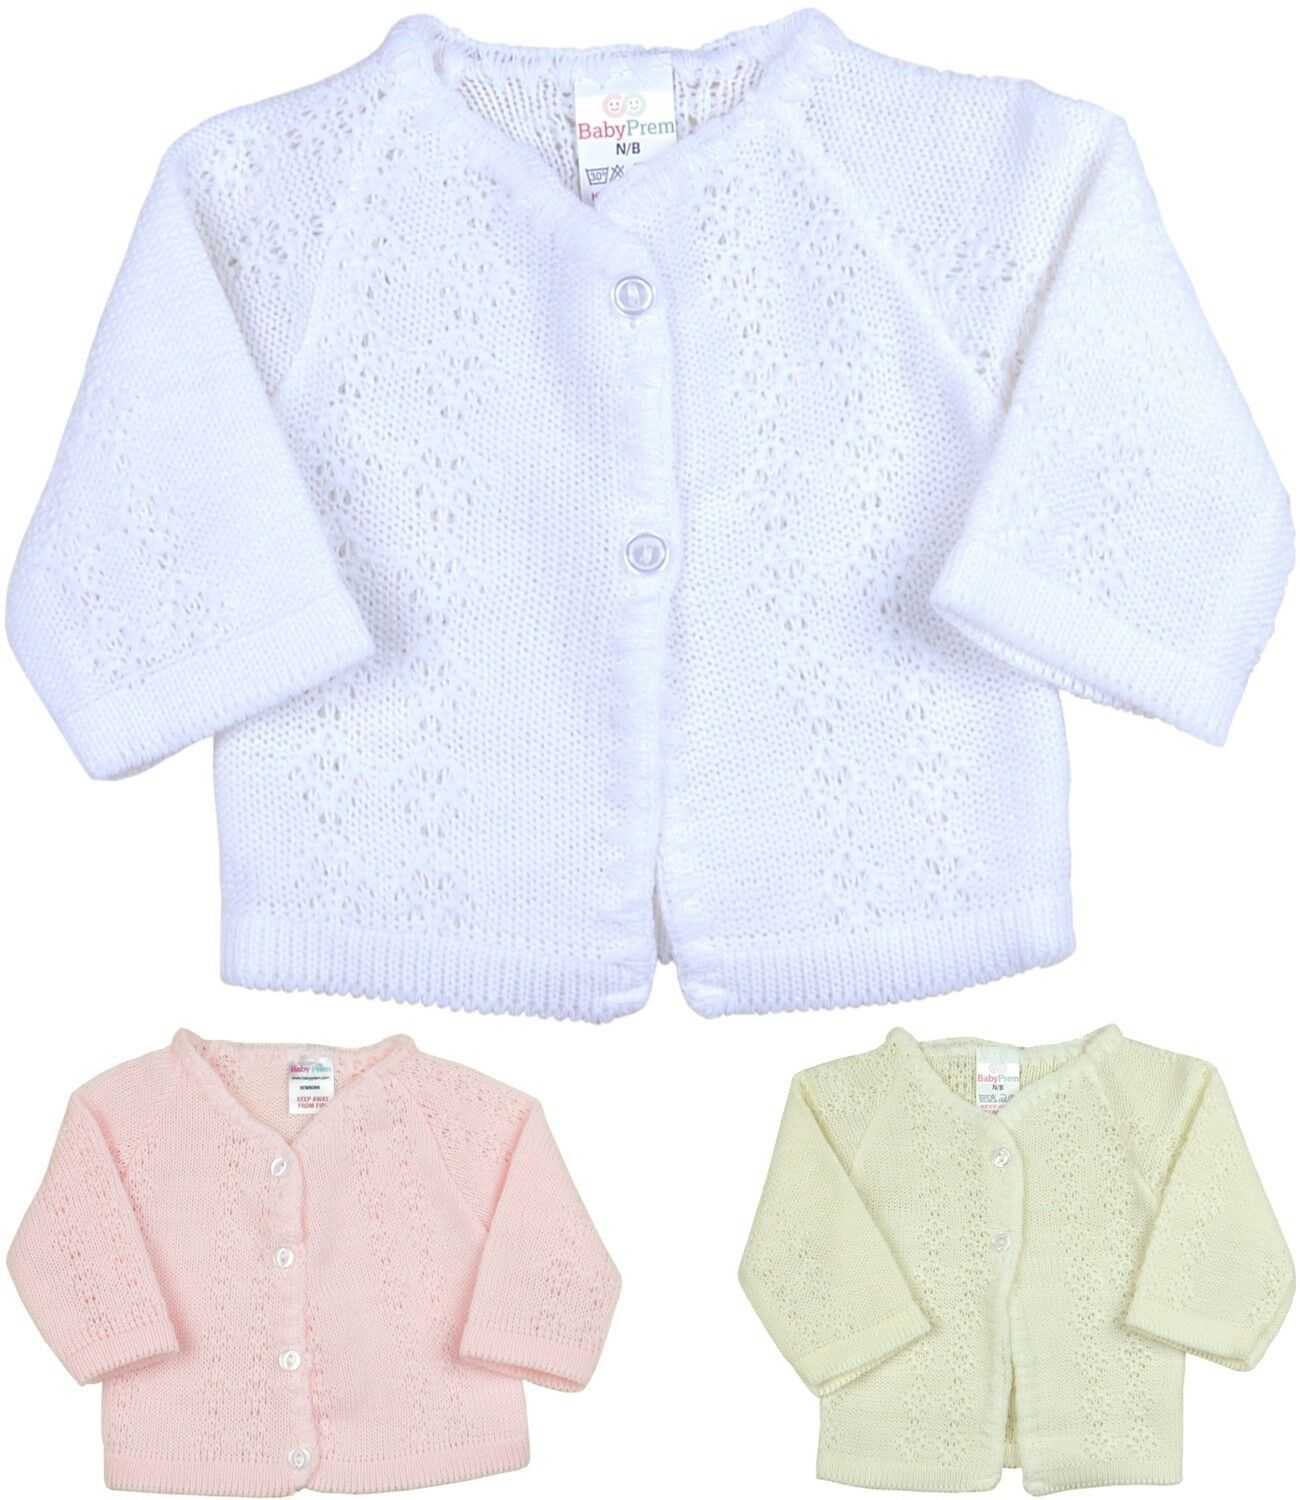 efb26d064947 BabyPrem Baby Girls Clothes Knitted Cream White Cardigan Cardi ...